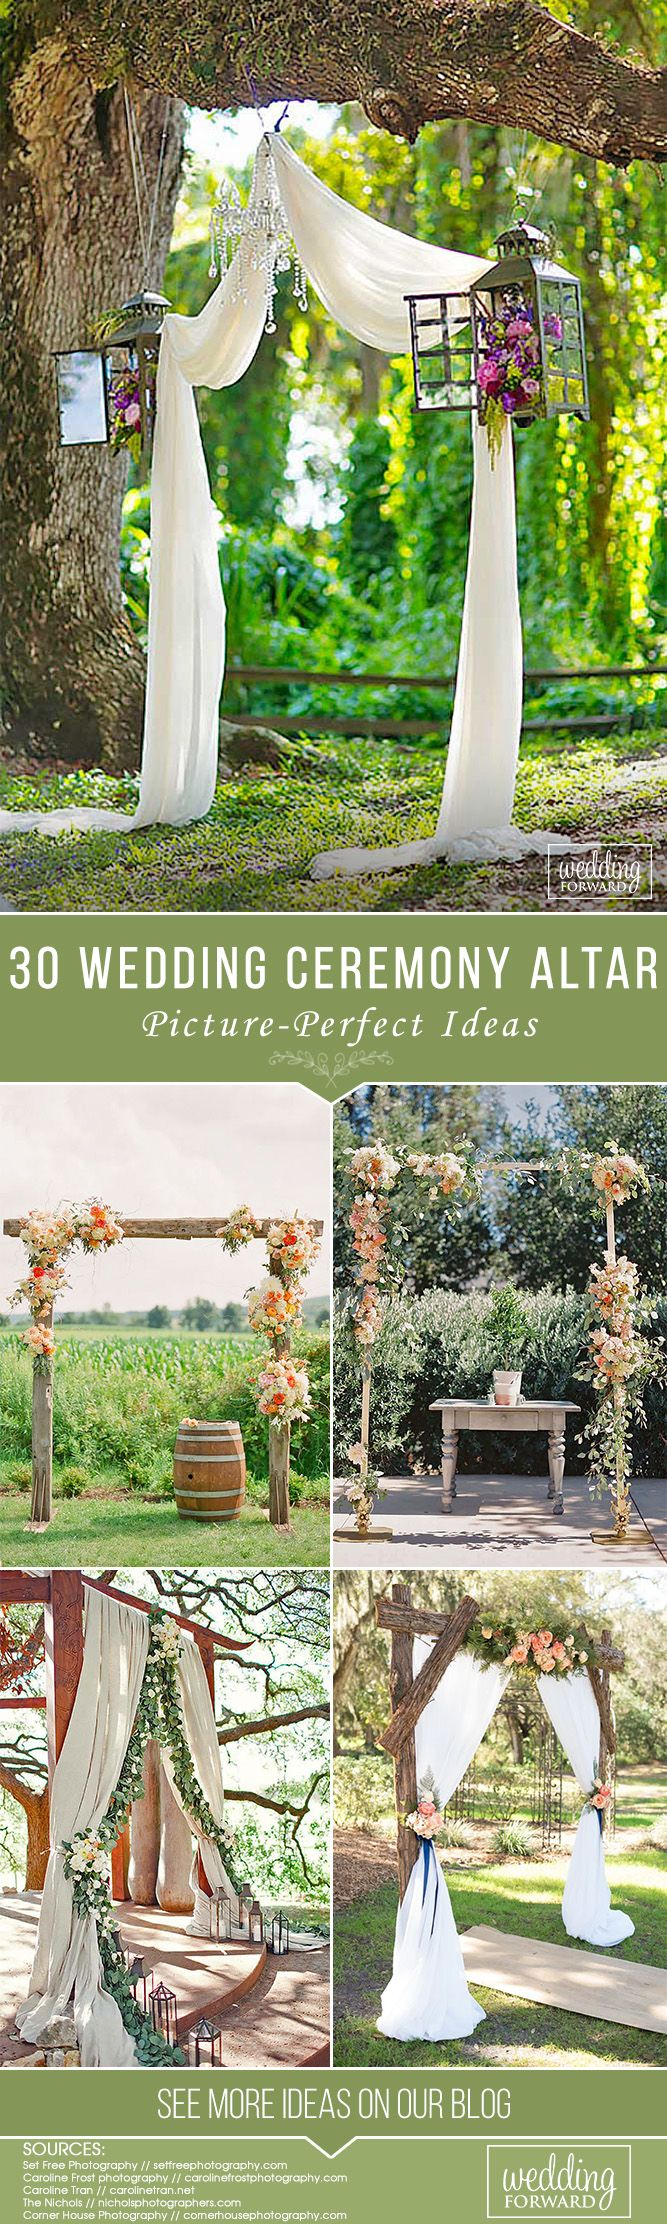 30 Picture-Perfect Wedding Ceremony Altar Ideas ❤ Altars will be remembered in pictures for years and years to come. Here are a few of our absolute favorite wedding ceremony altar ideas! Get inspire! See more: http://www.weddingforward.com/wedding-ceremony-altar-ideas/ #weddings #decoration #bridaldecorations #weddingceremonyaltarideas